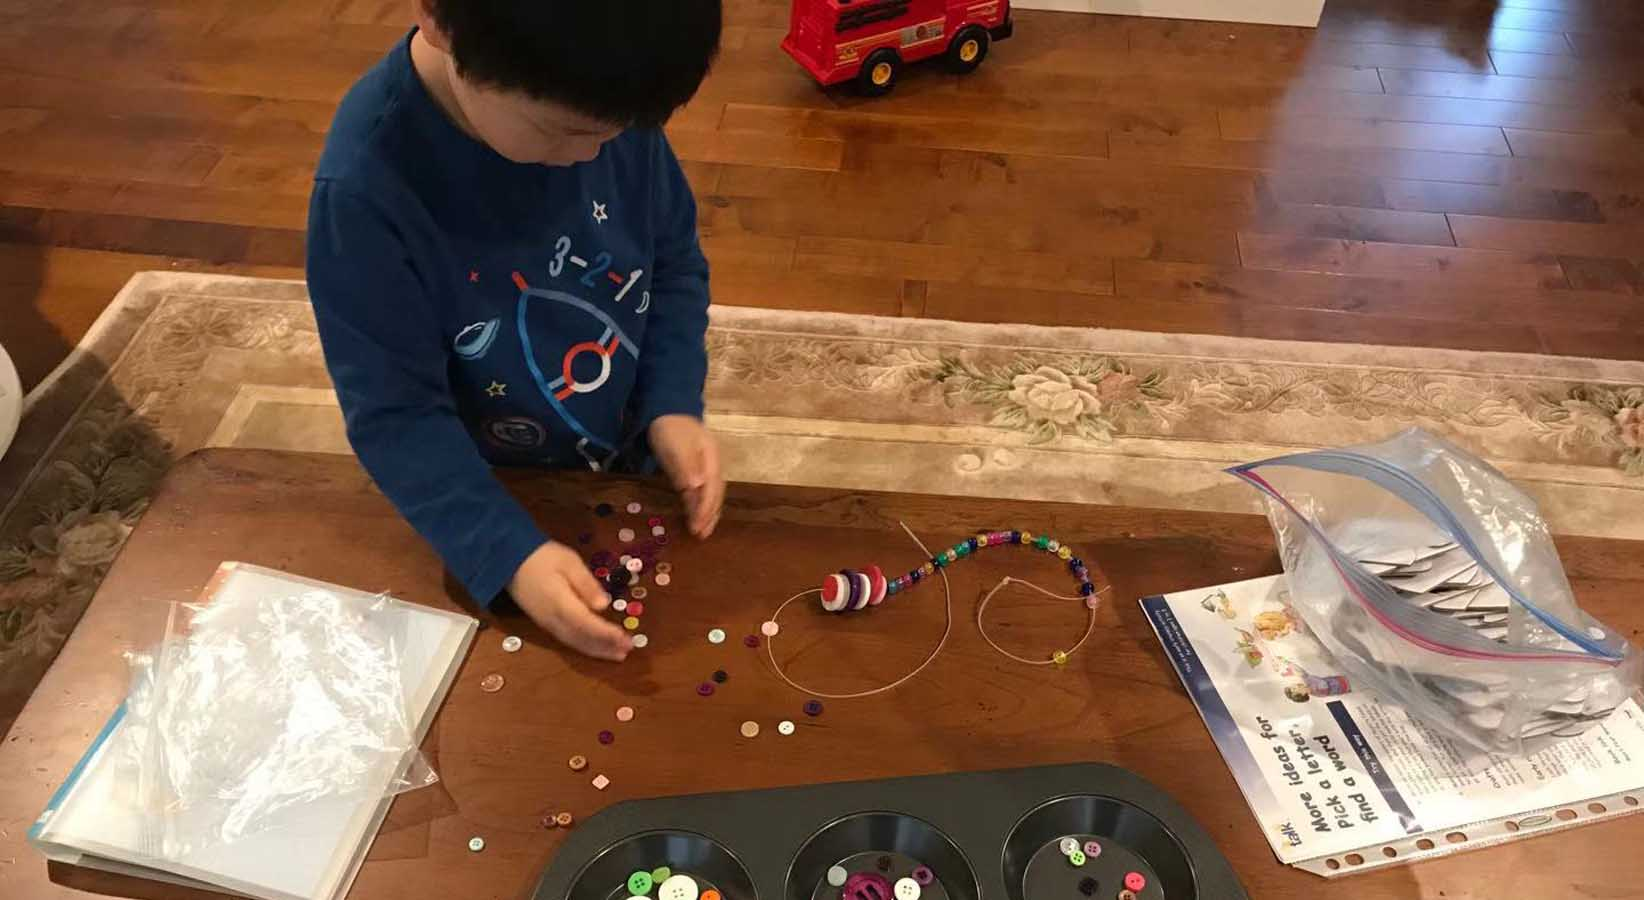 Lin Dong's son Henry counting button on a table.